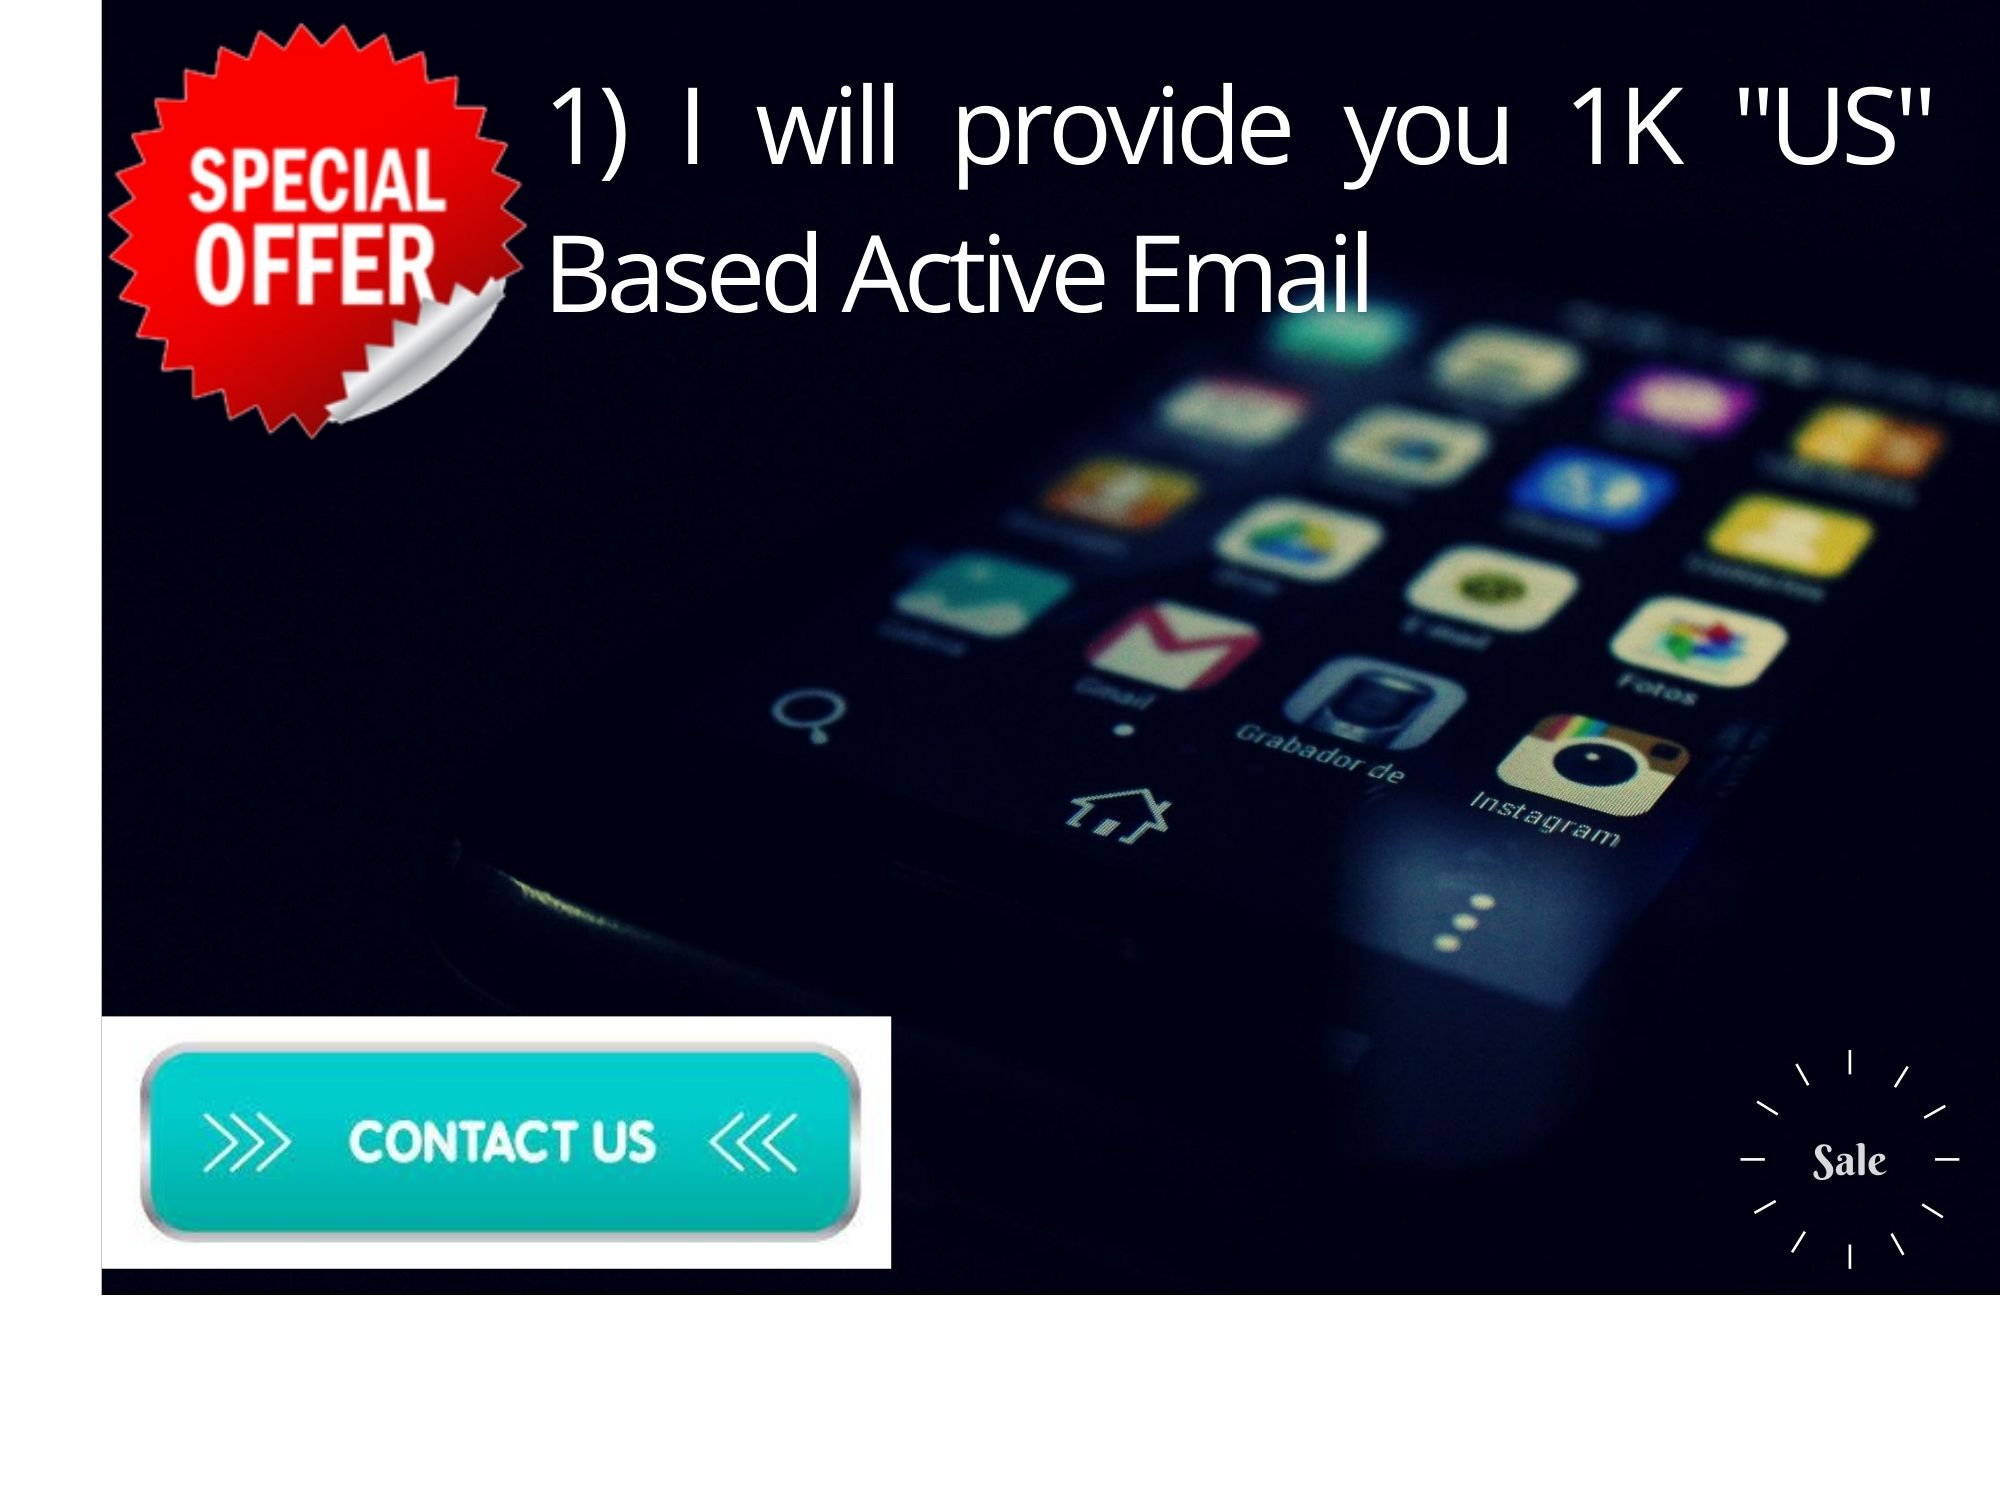 I will provide you 1K US Based Active Email